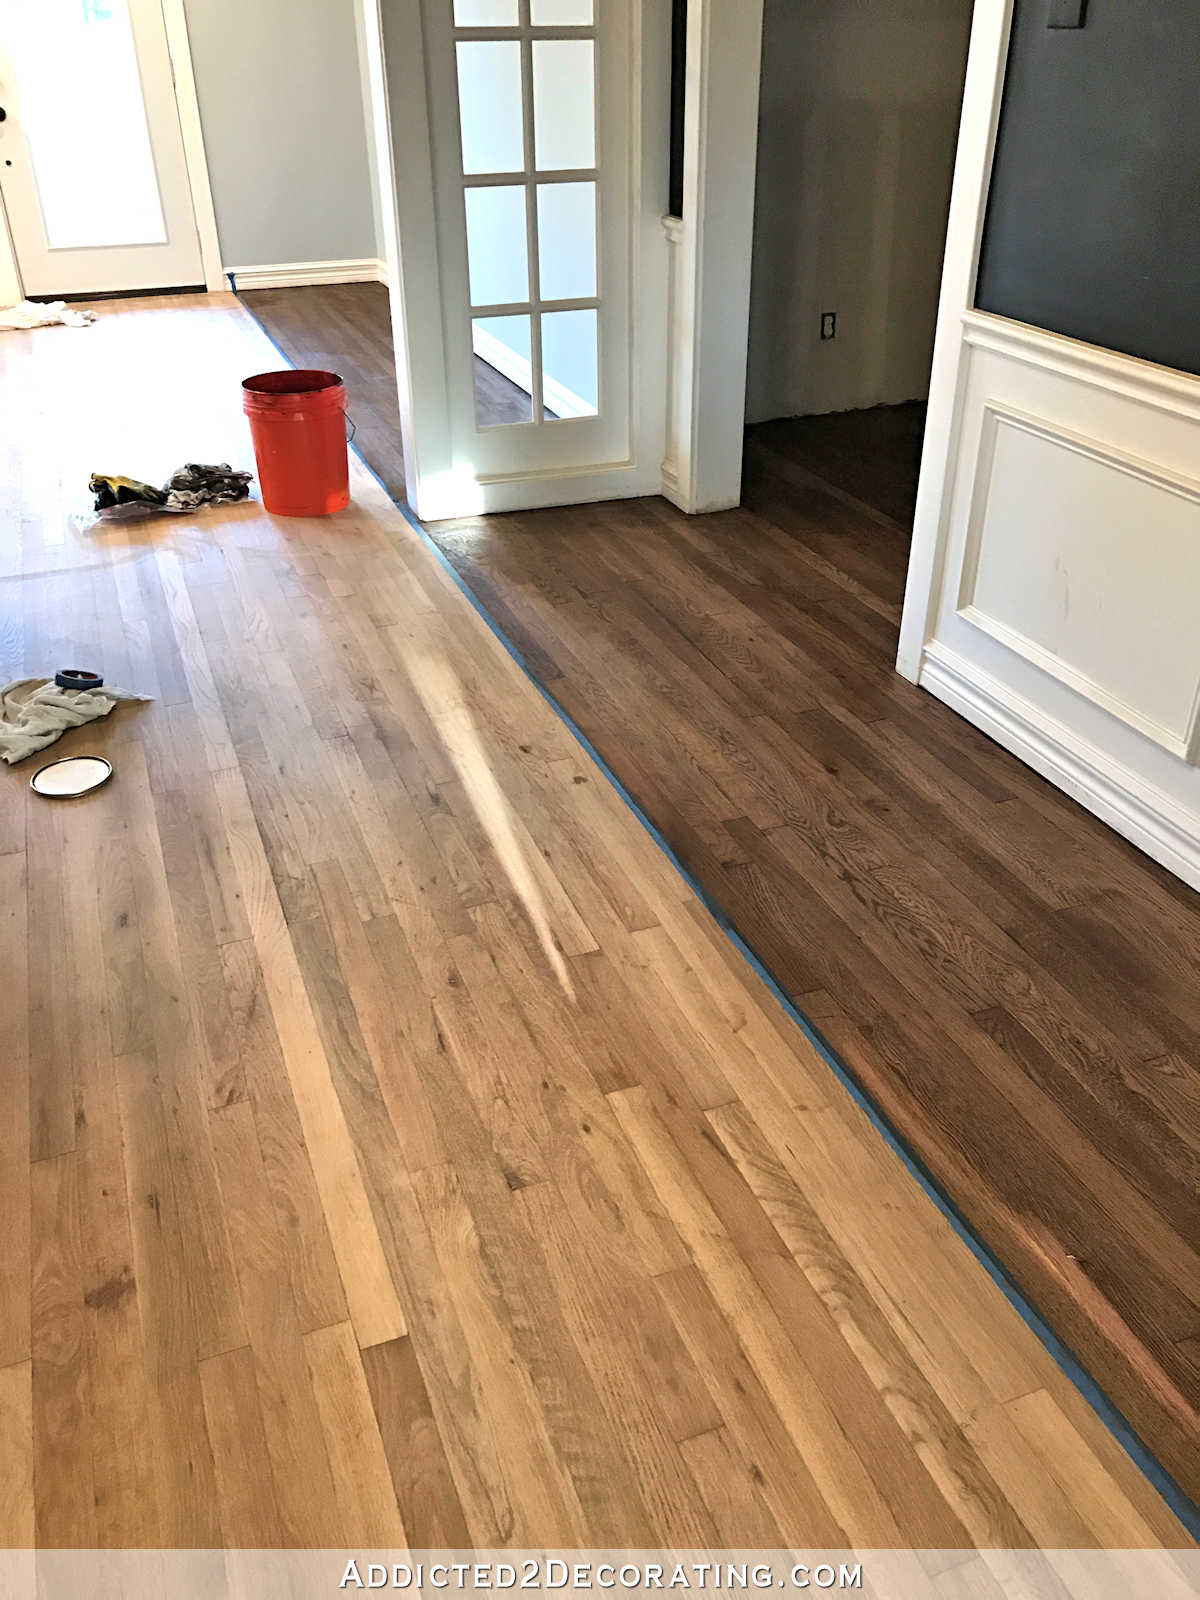 hardwood floor top of stairs of adventures in staining my red oak hardwood floors products process throughout staining red oak hardwood floors 6 stain on partial floor in entryway and music